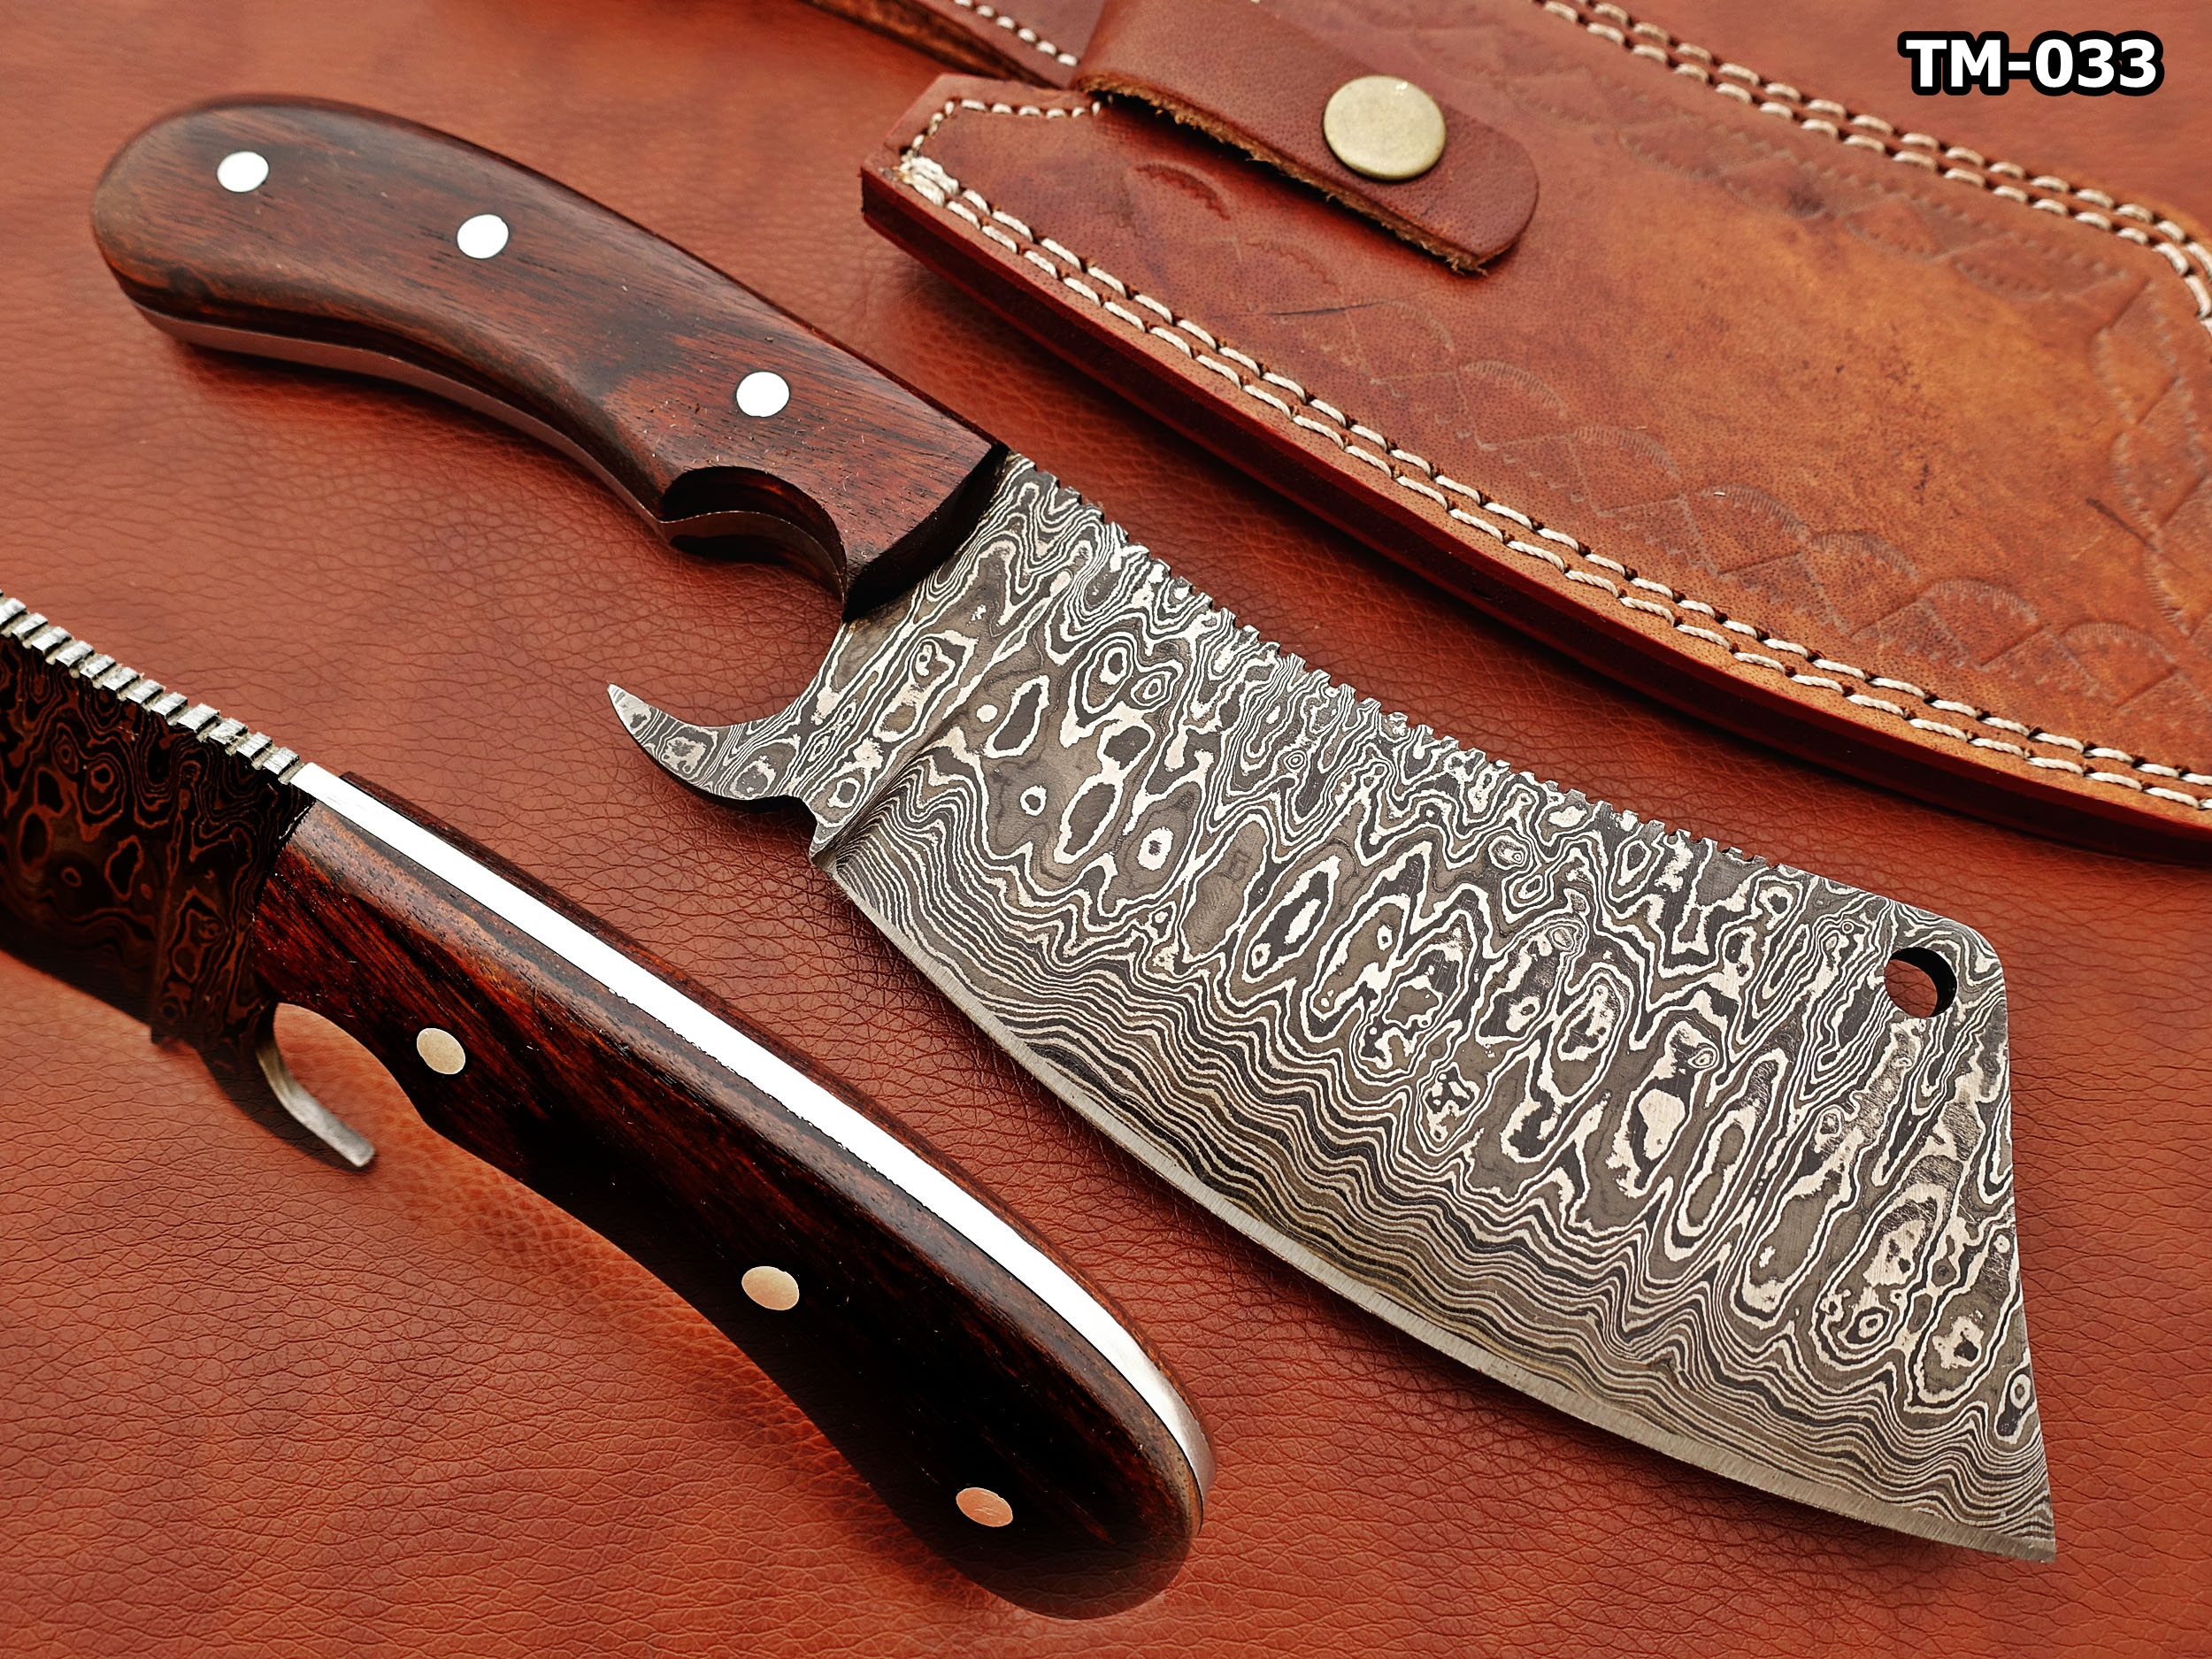 12 Hand Forged Damascus Steel Meat Cleaver Walnut Wood Scale Chopper Knife Leather Sheath Included